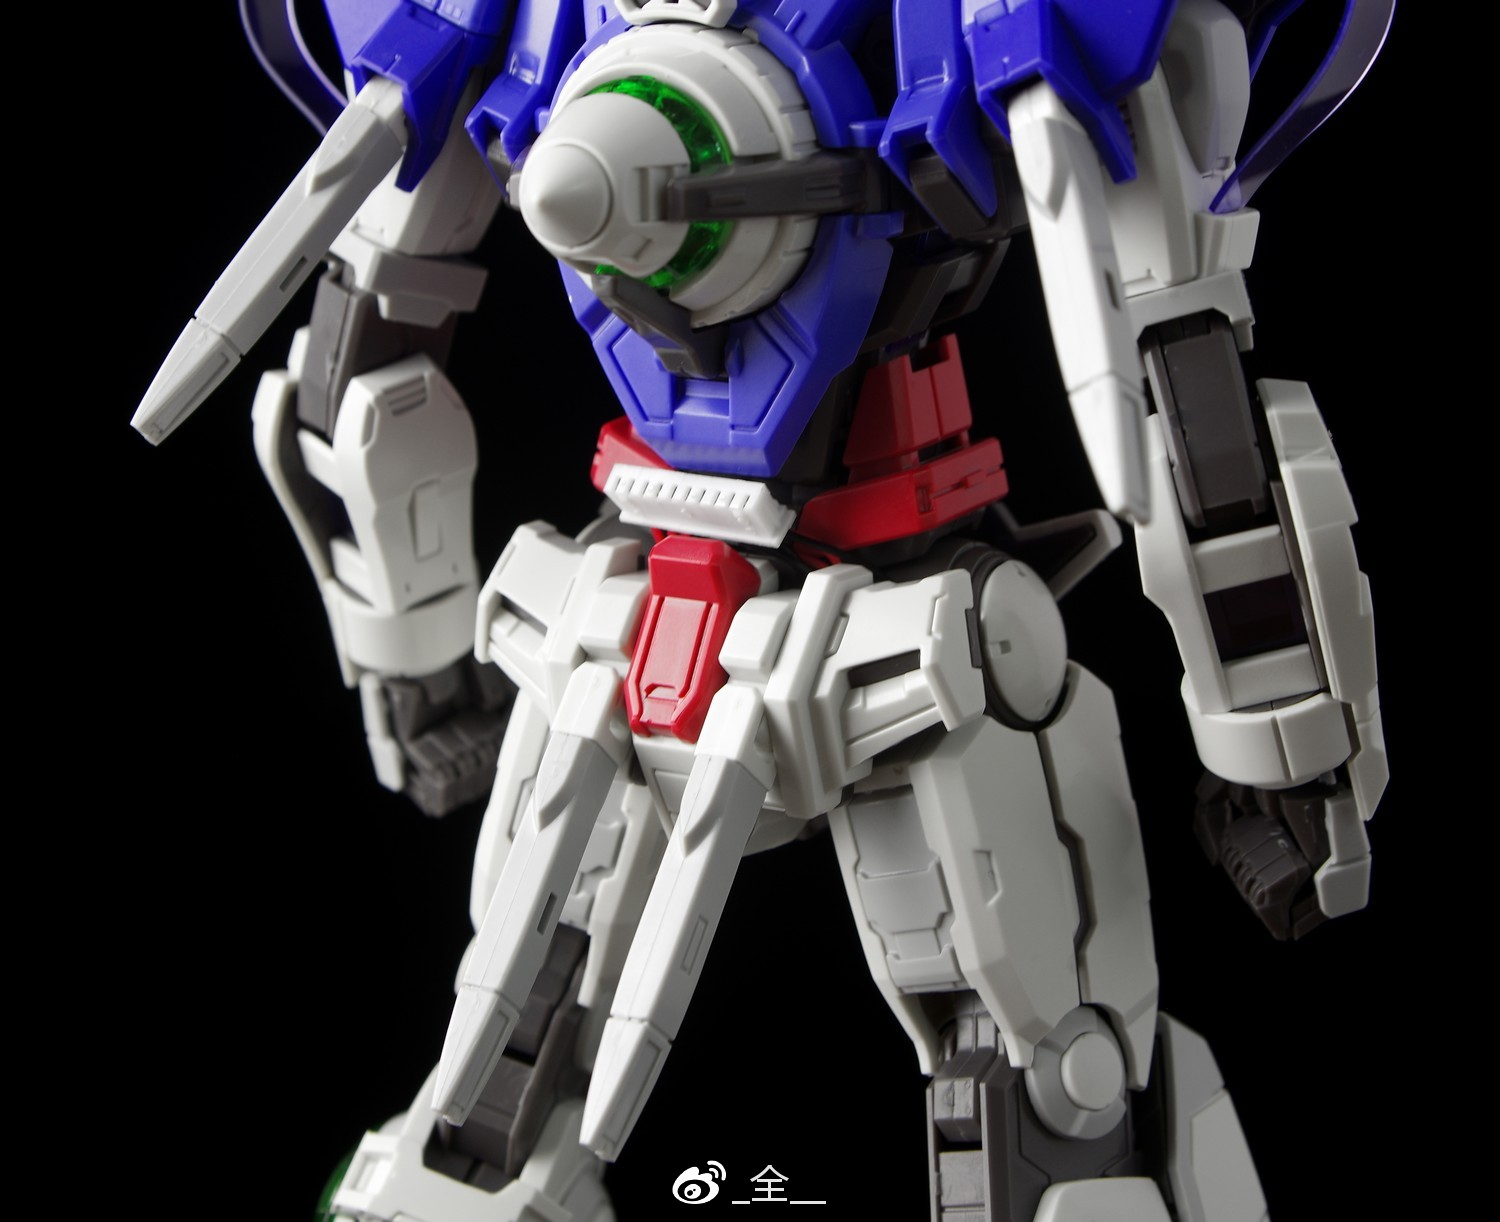 S269_mg_exia_led_hobby_star_inask_039.jpg